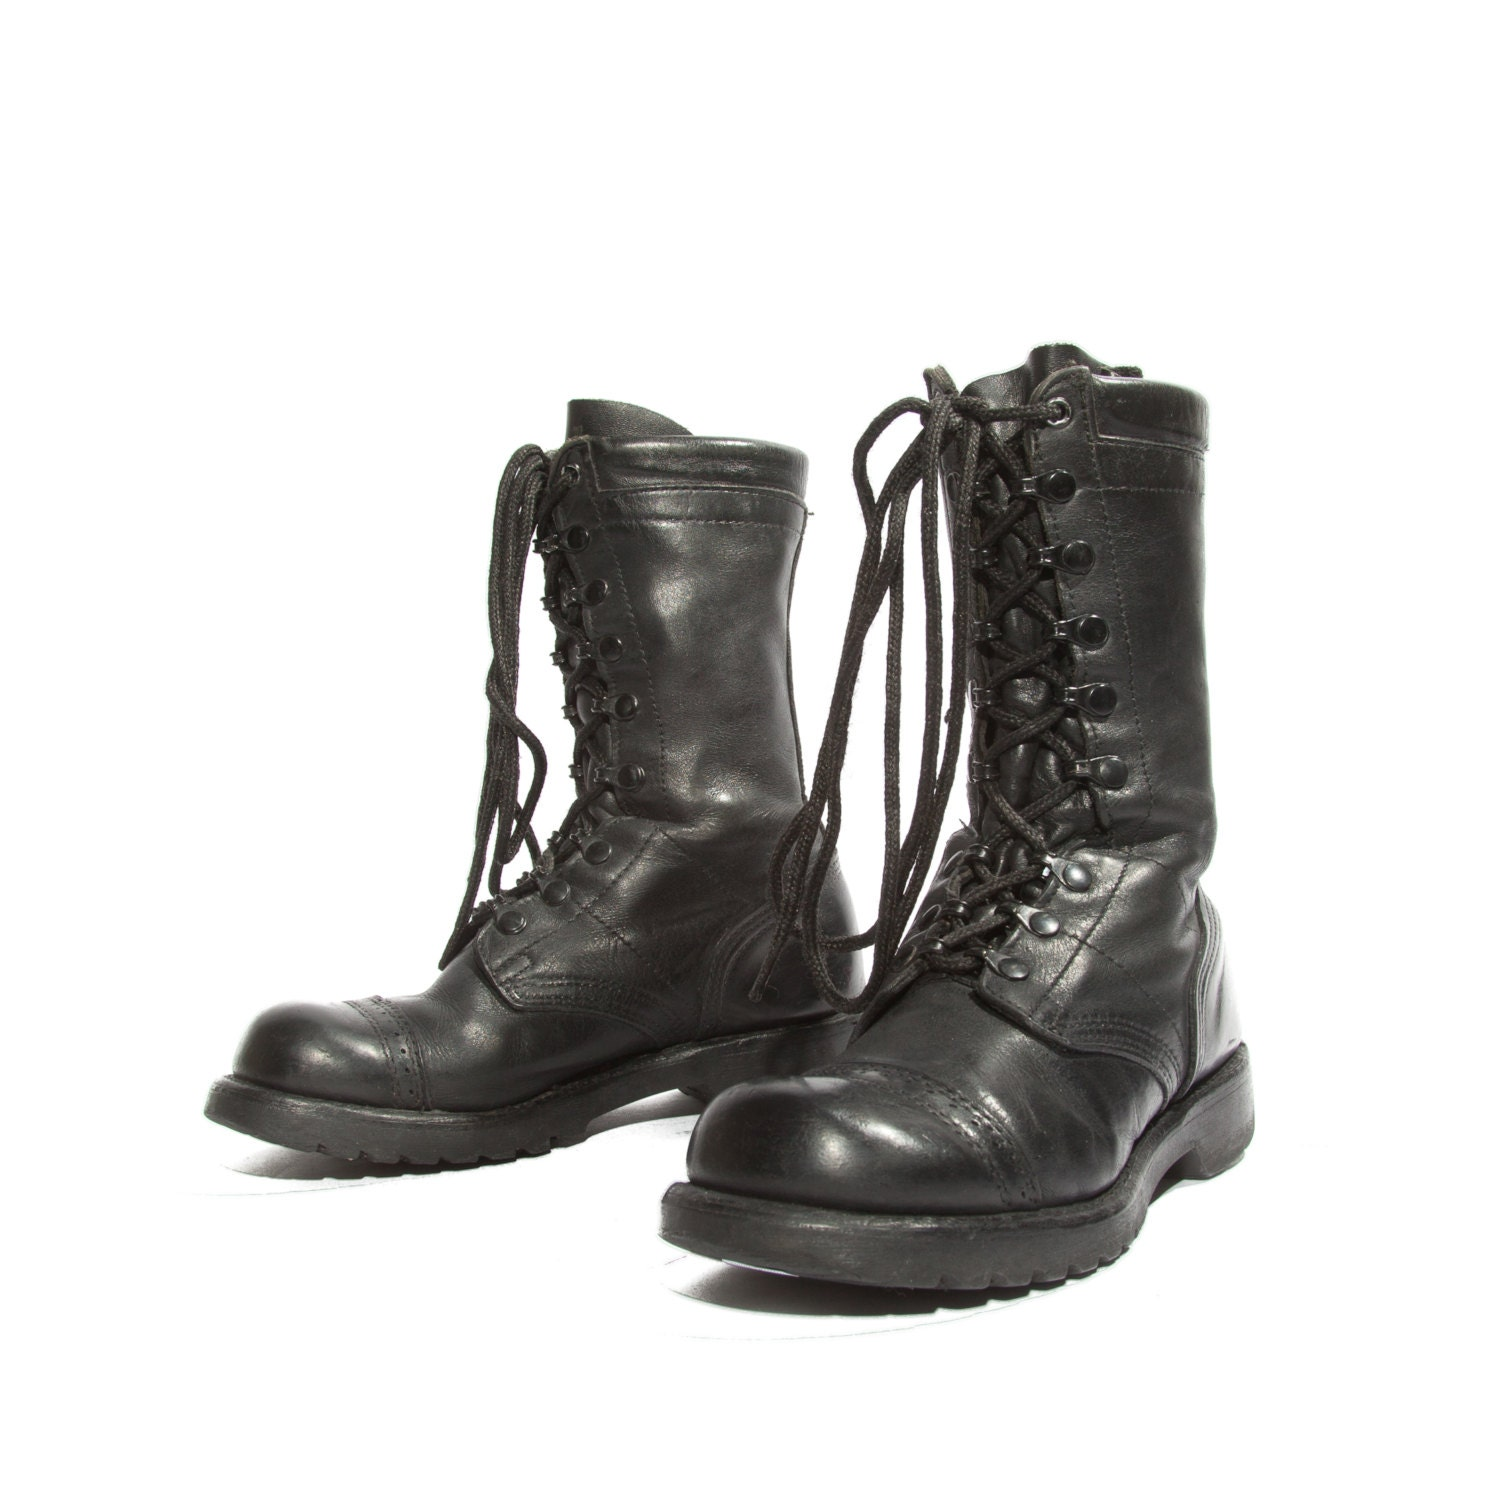 items similar to s corcoran vintage combat boots